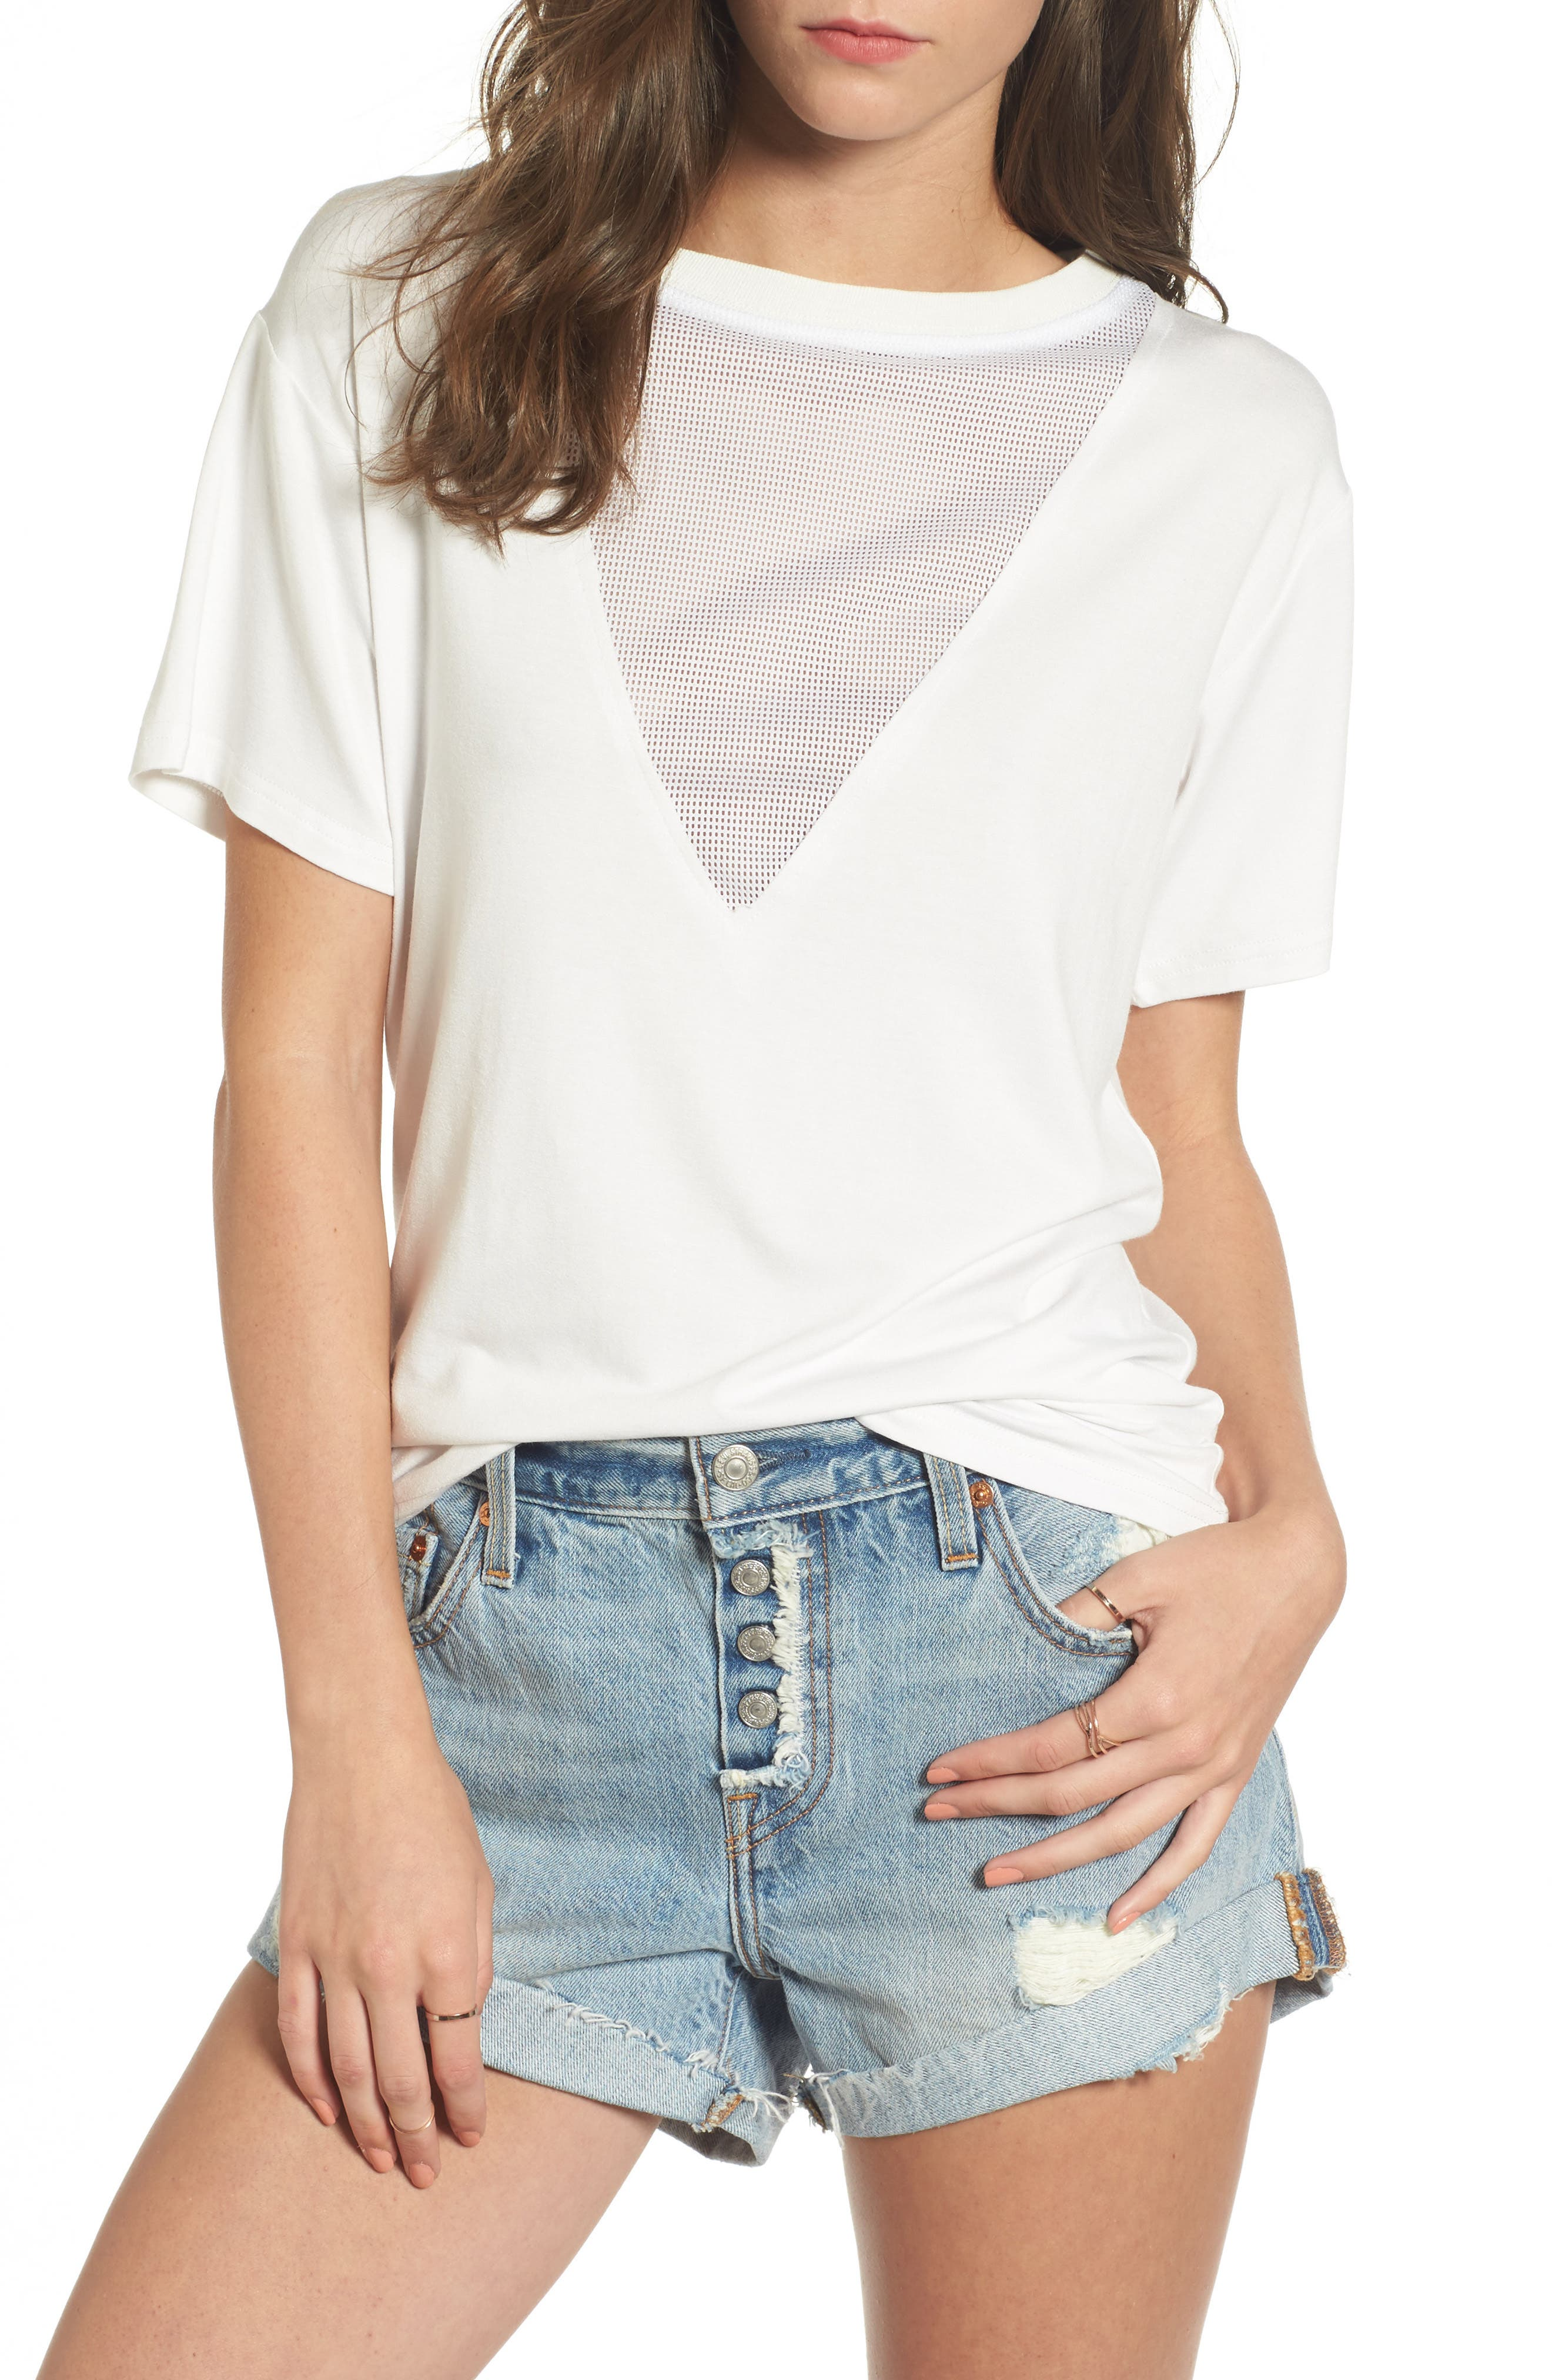 Lira Clothing Valley Mesh Inset Tee